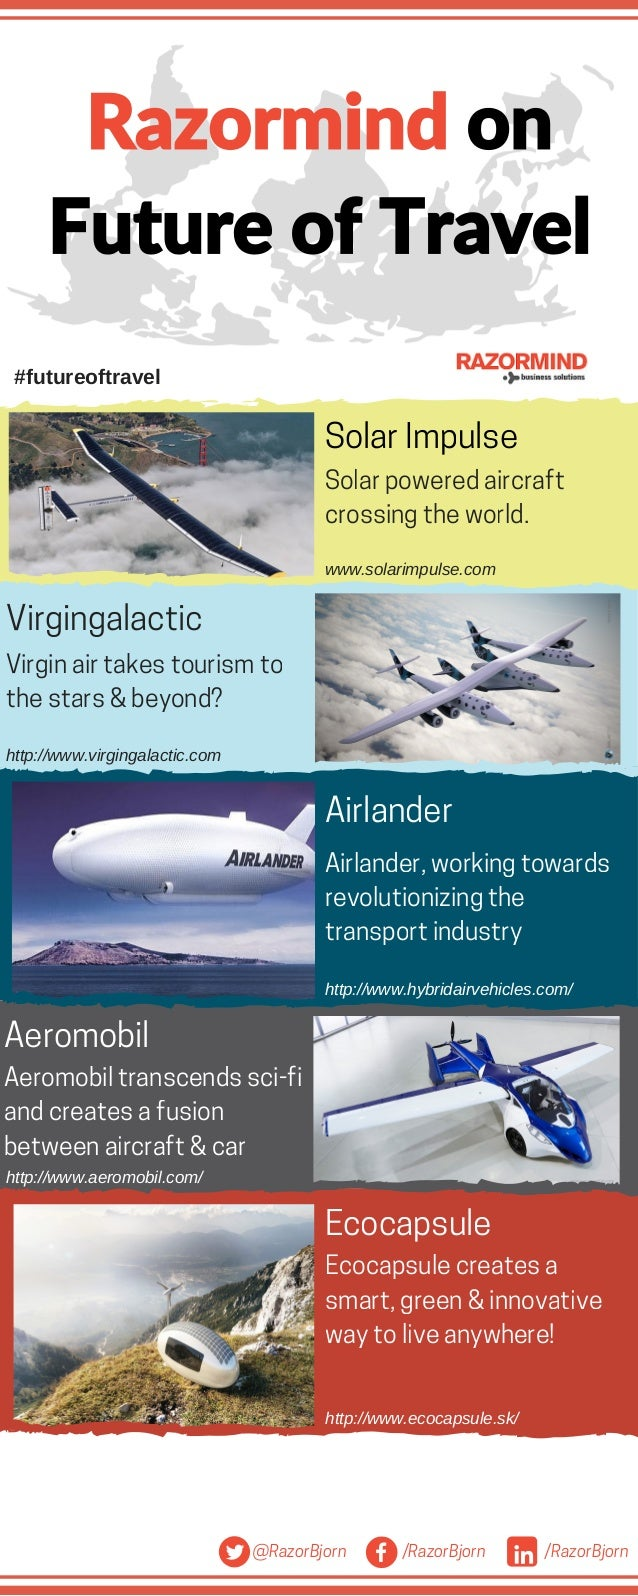 @RazorBjorn /RazorBjorn /RazorBjorn Razormind on Future of Travel Solar Impulse Virgingalactic Airlander Aeromobil Ecocaps...